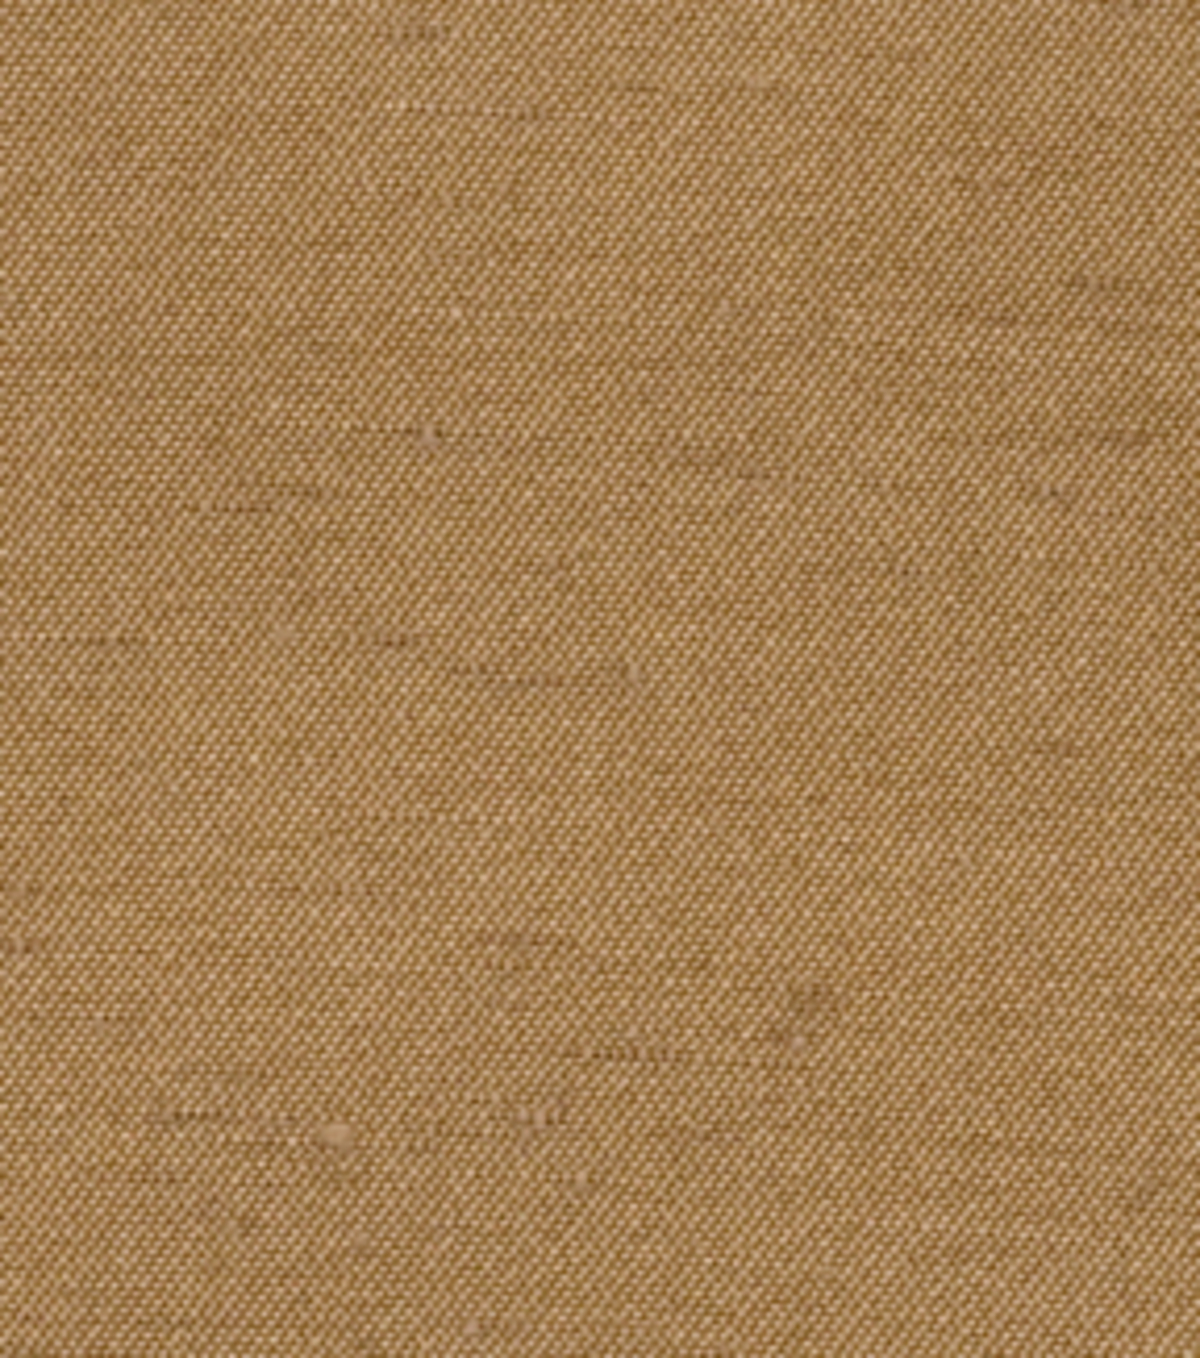 Home Decor 8\u0022x8\u0022 Fabric Swatch-Signature Series Antique Satin Maple